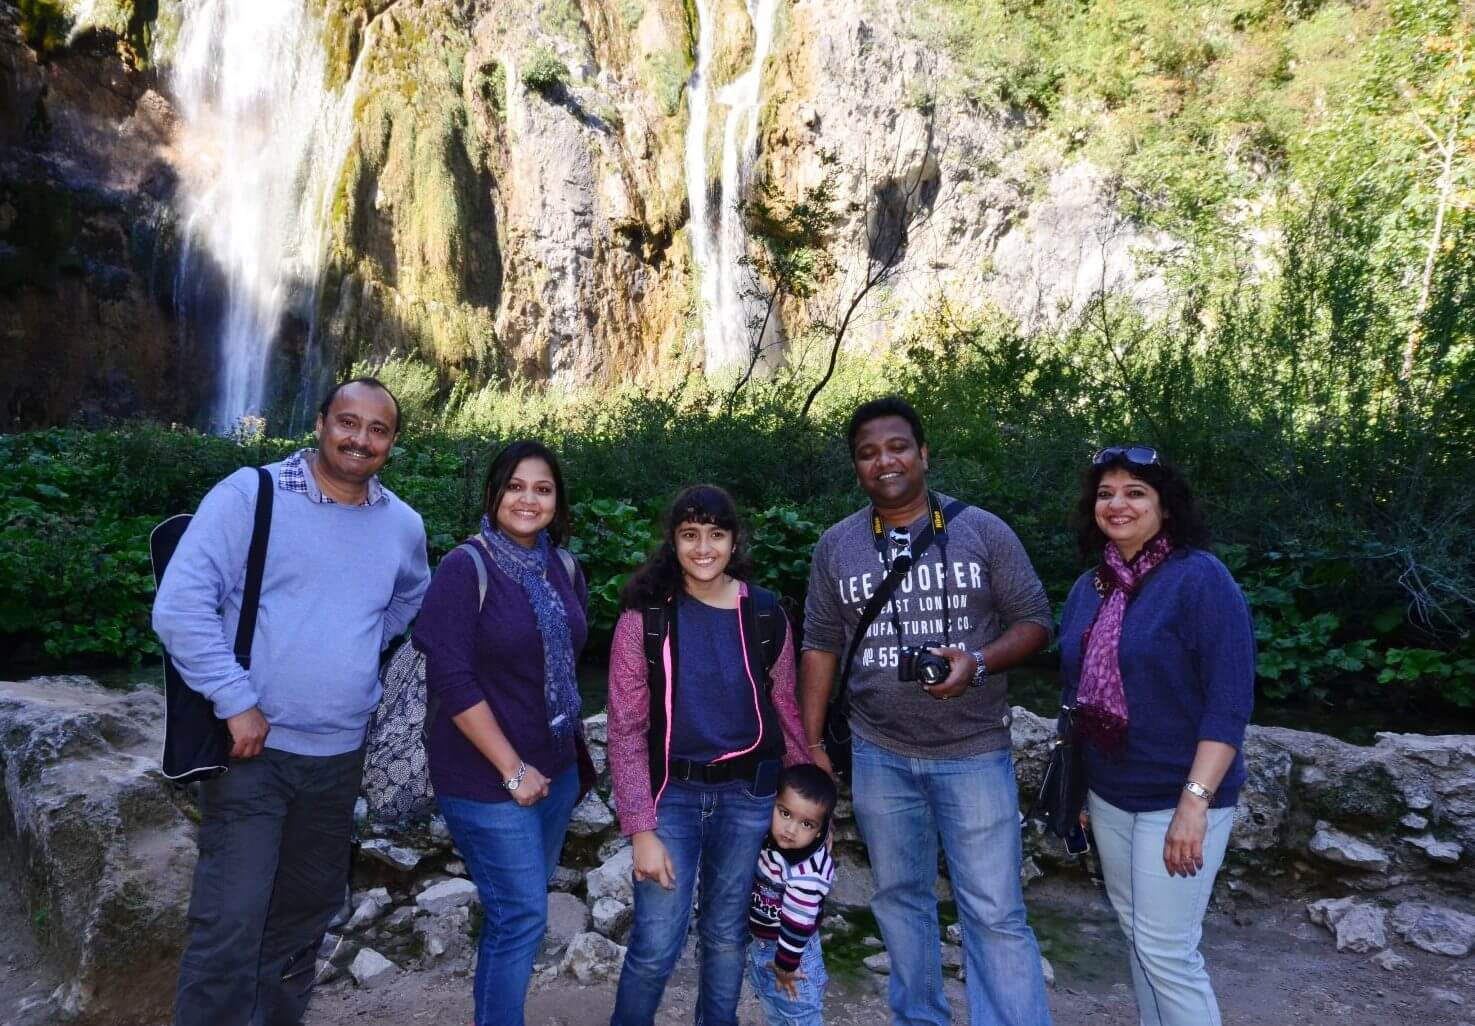 Group in front of The Big Waterfall